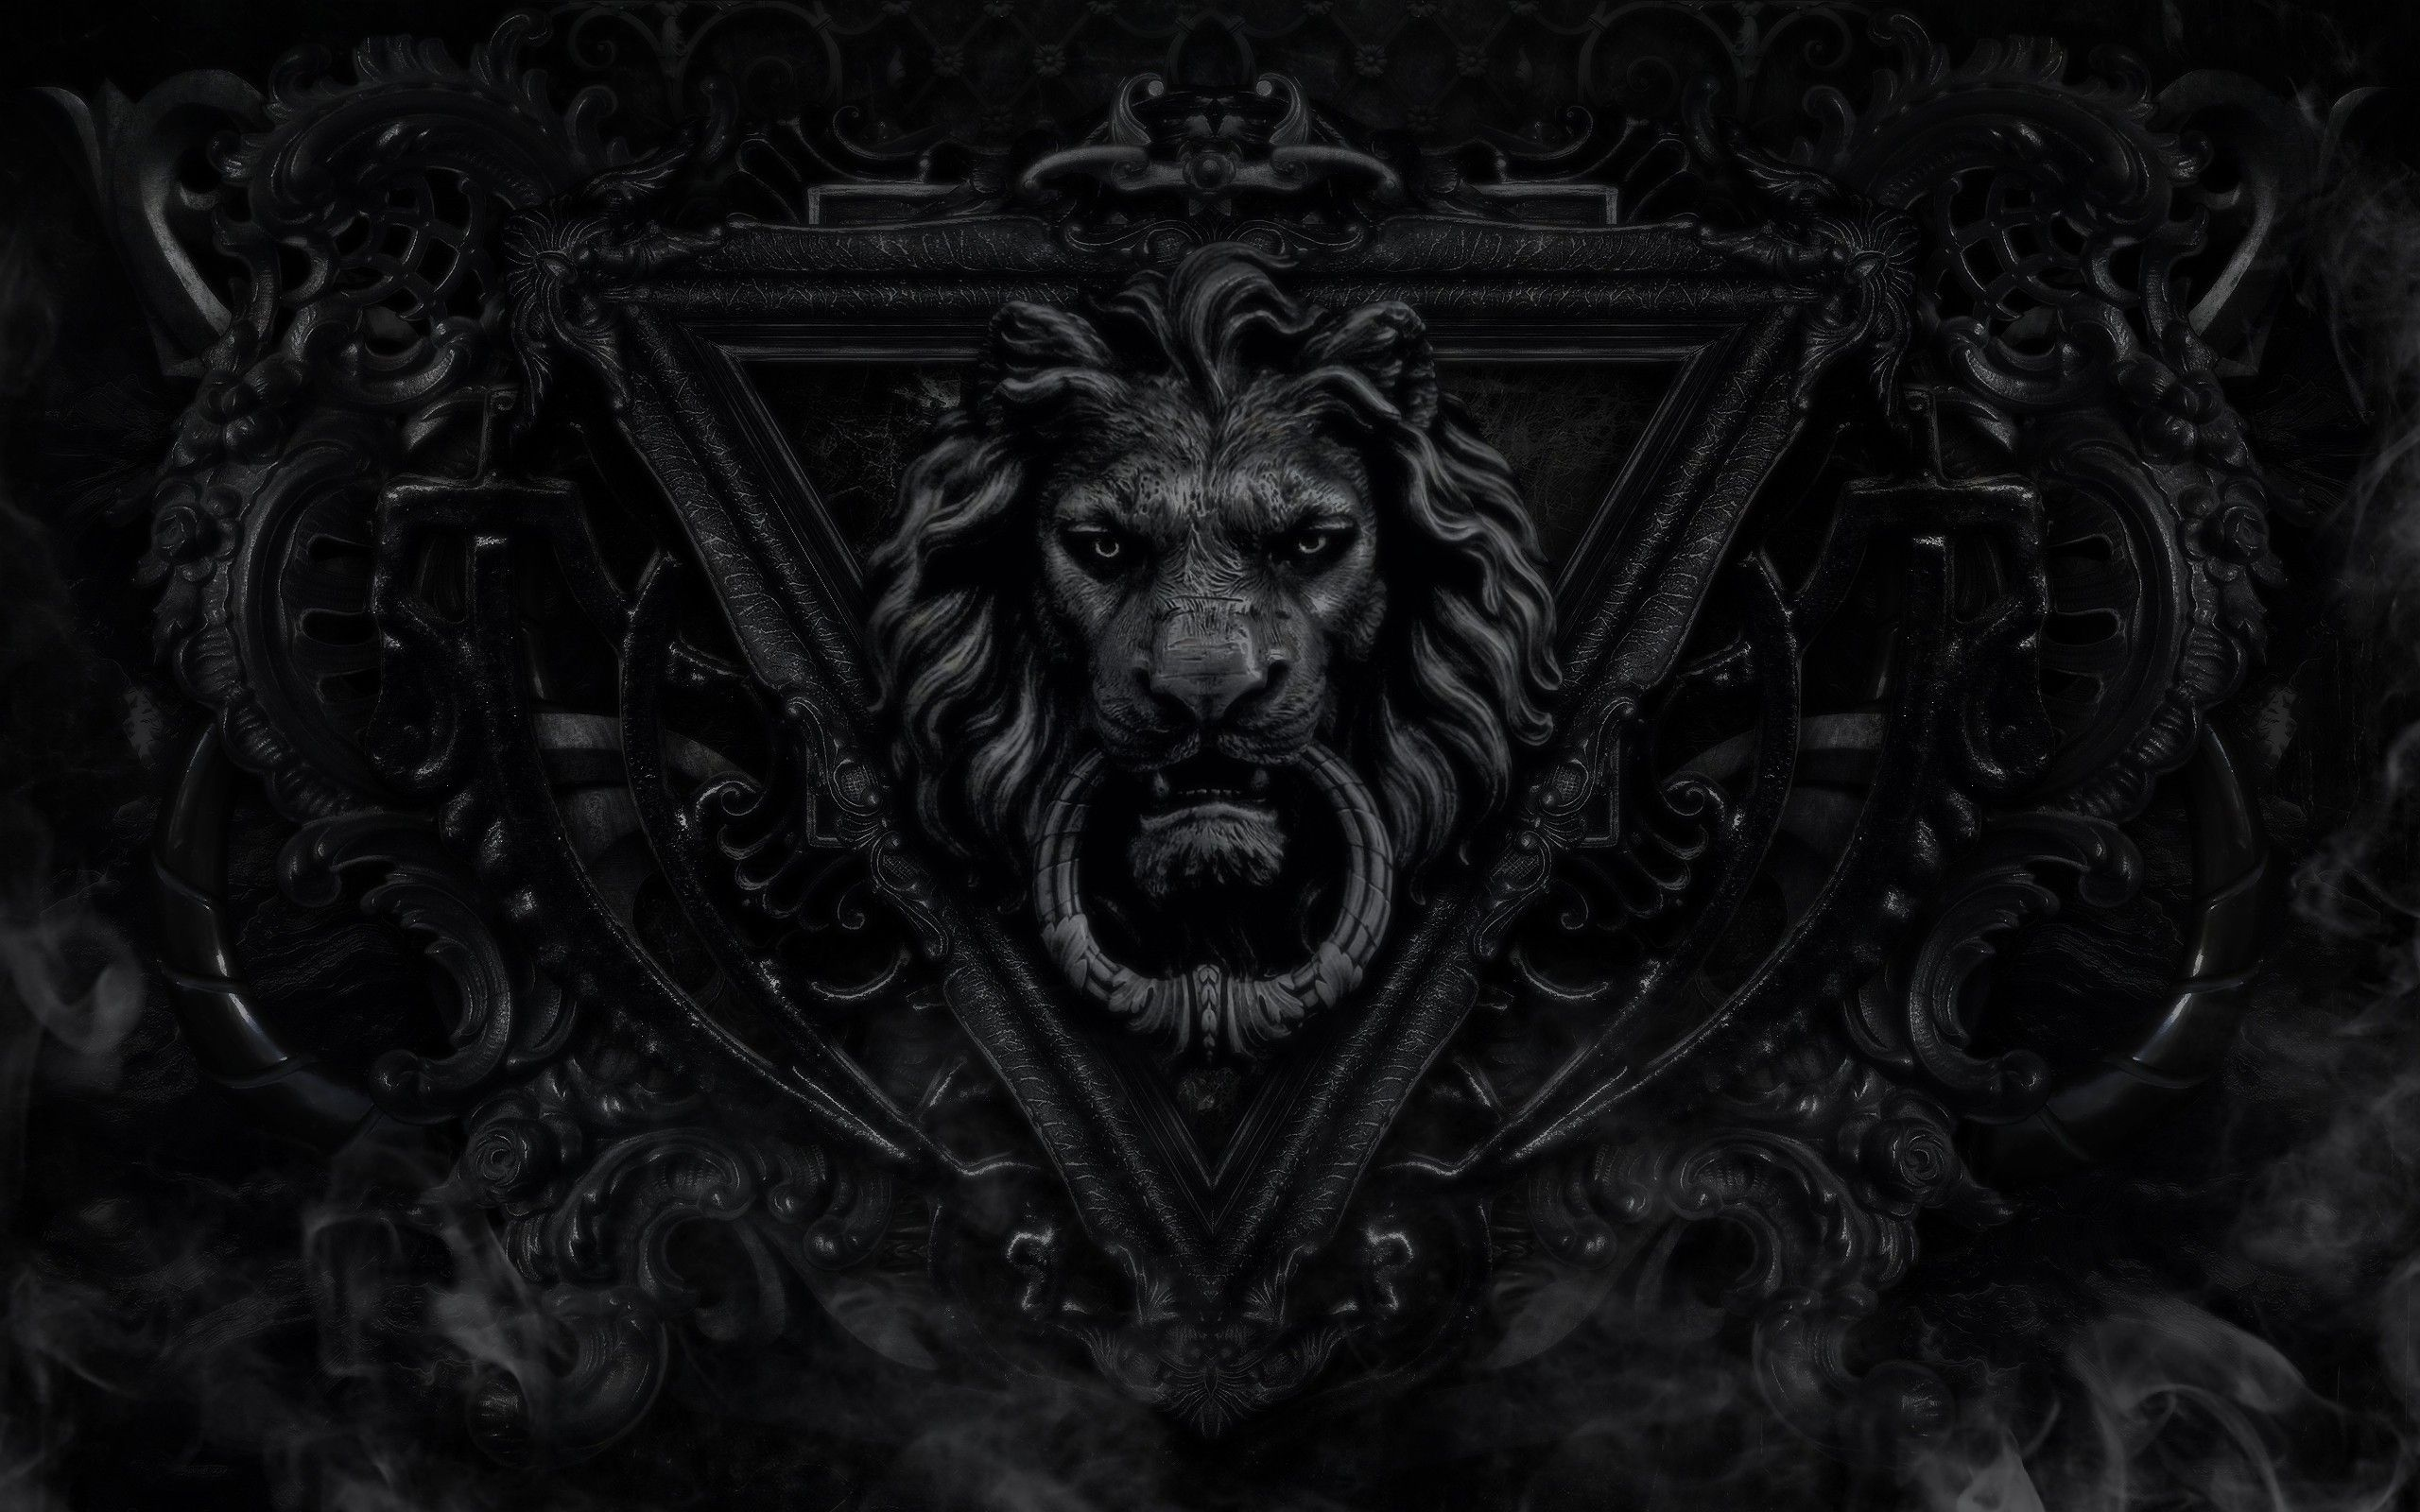 Dark Gothic Lions X Wallpaper